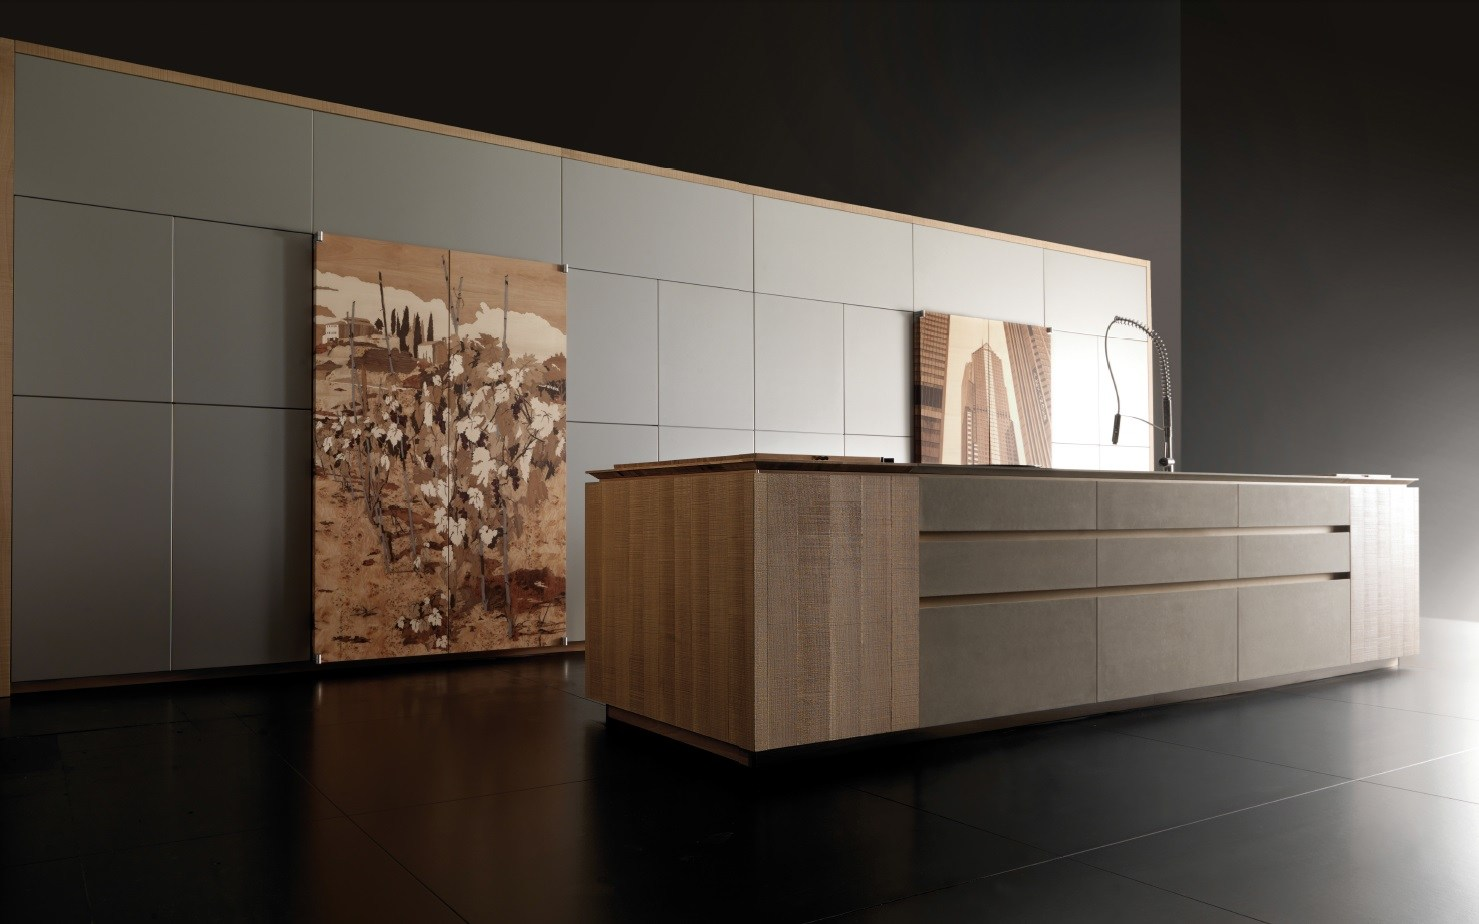 Awesome Toncelli Cucine Prezzi Gallery - Design & Ideas 2017 ...